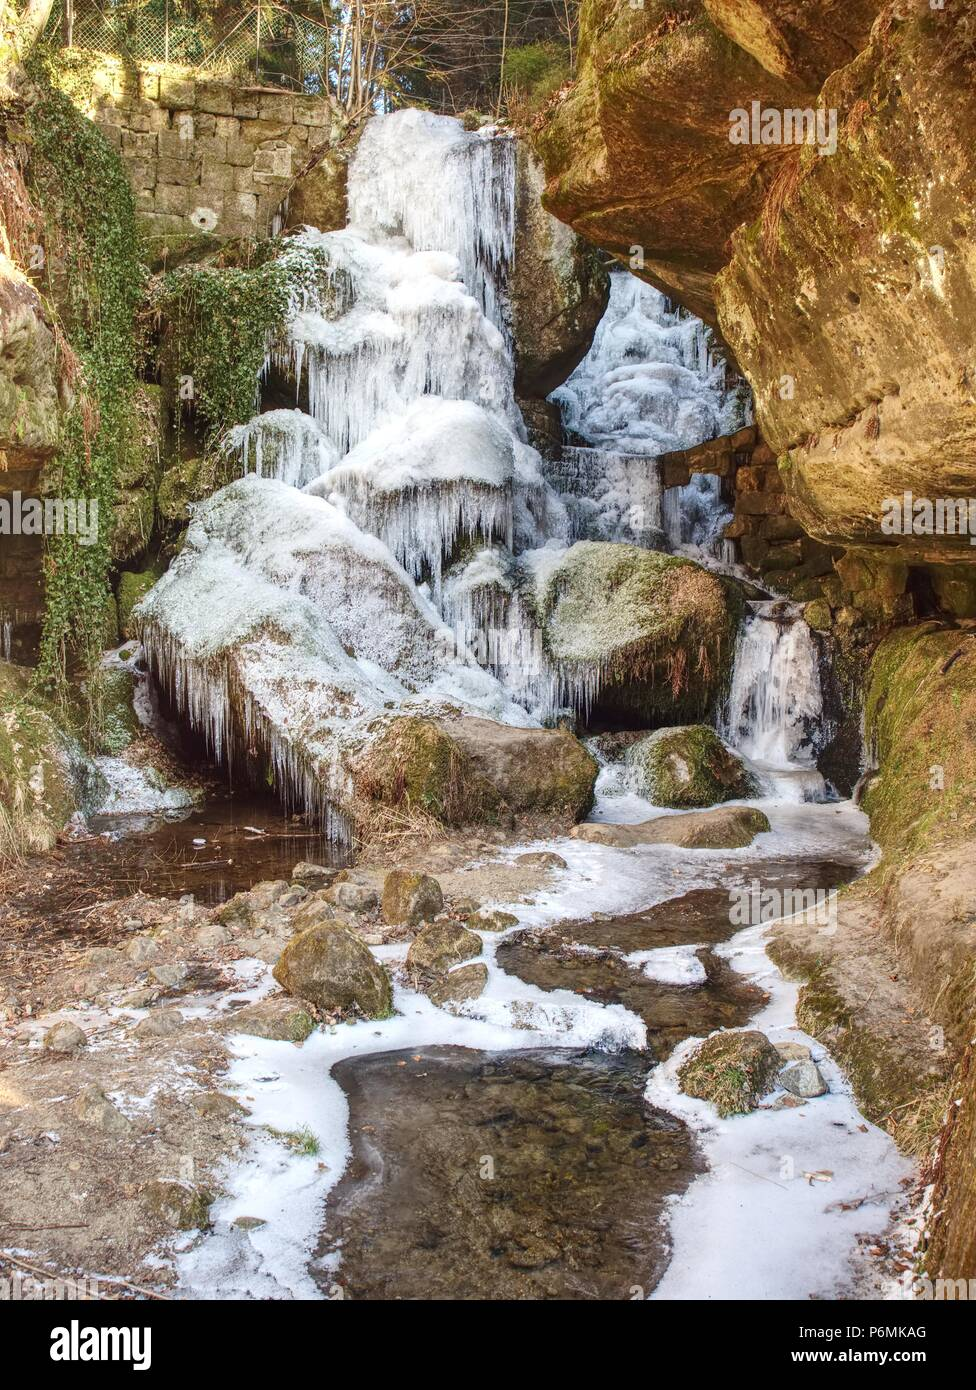 Frozen waterfall between rocks. Fallen icicle bellow waterfall, stony and mossy stream bank. - Stock Image